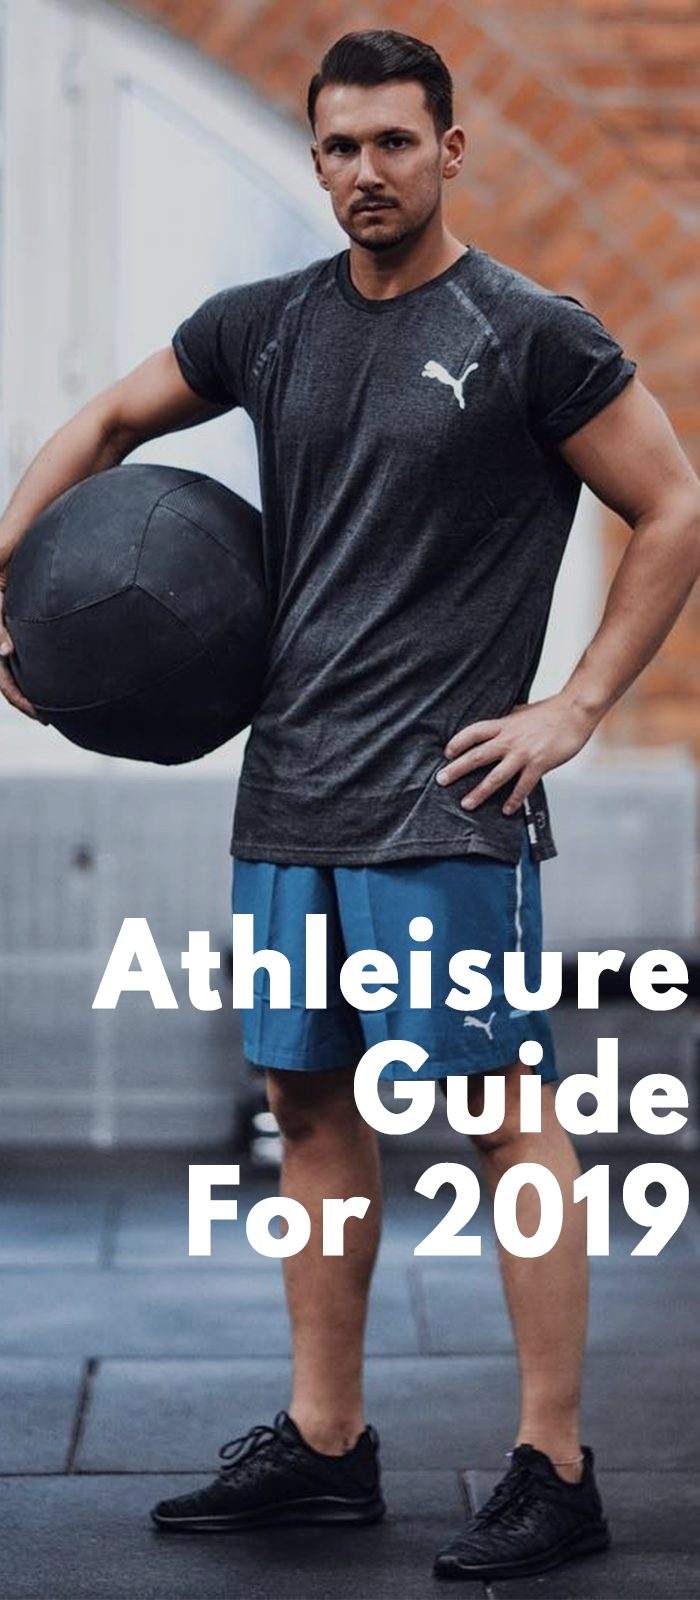 Athleisure Guide For 2019